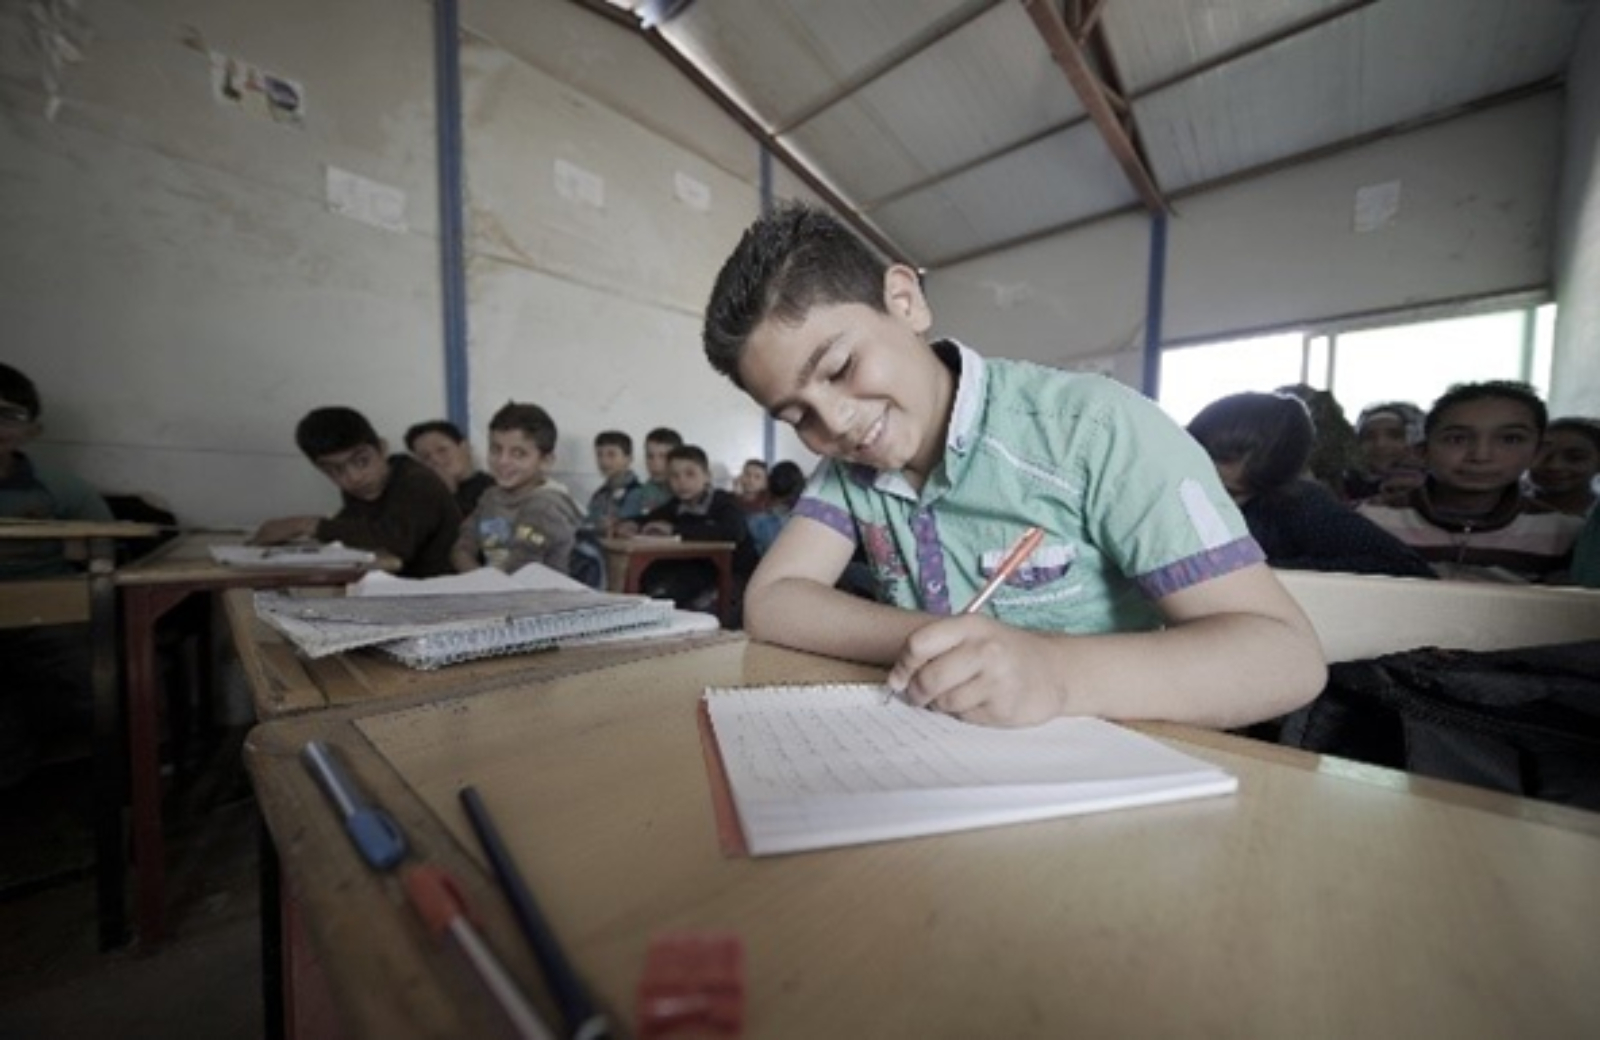 school in Syria